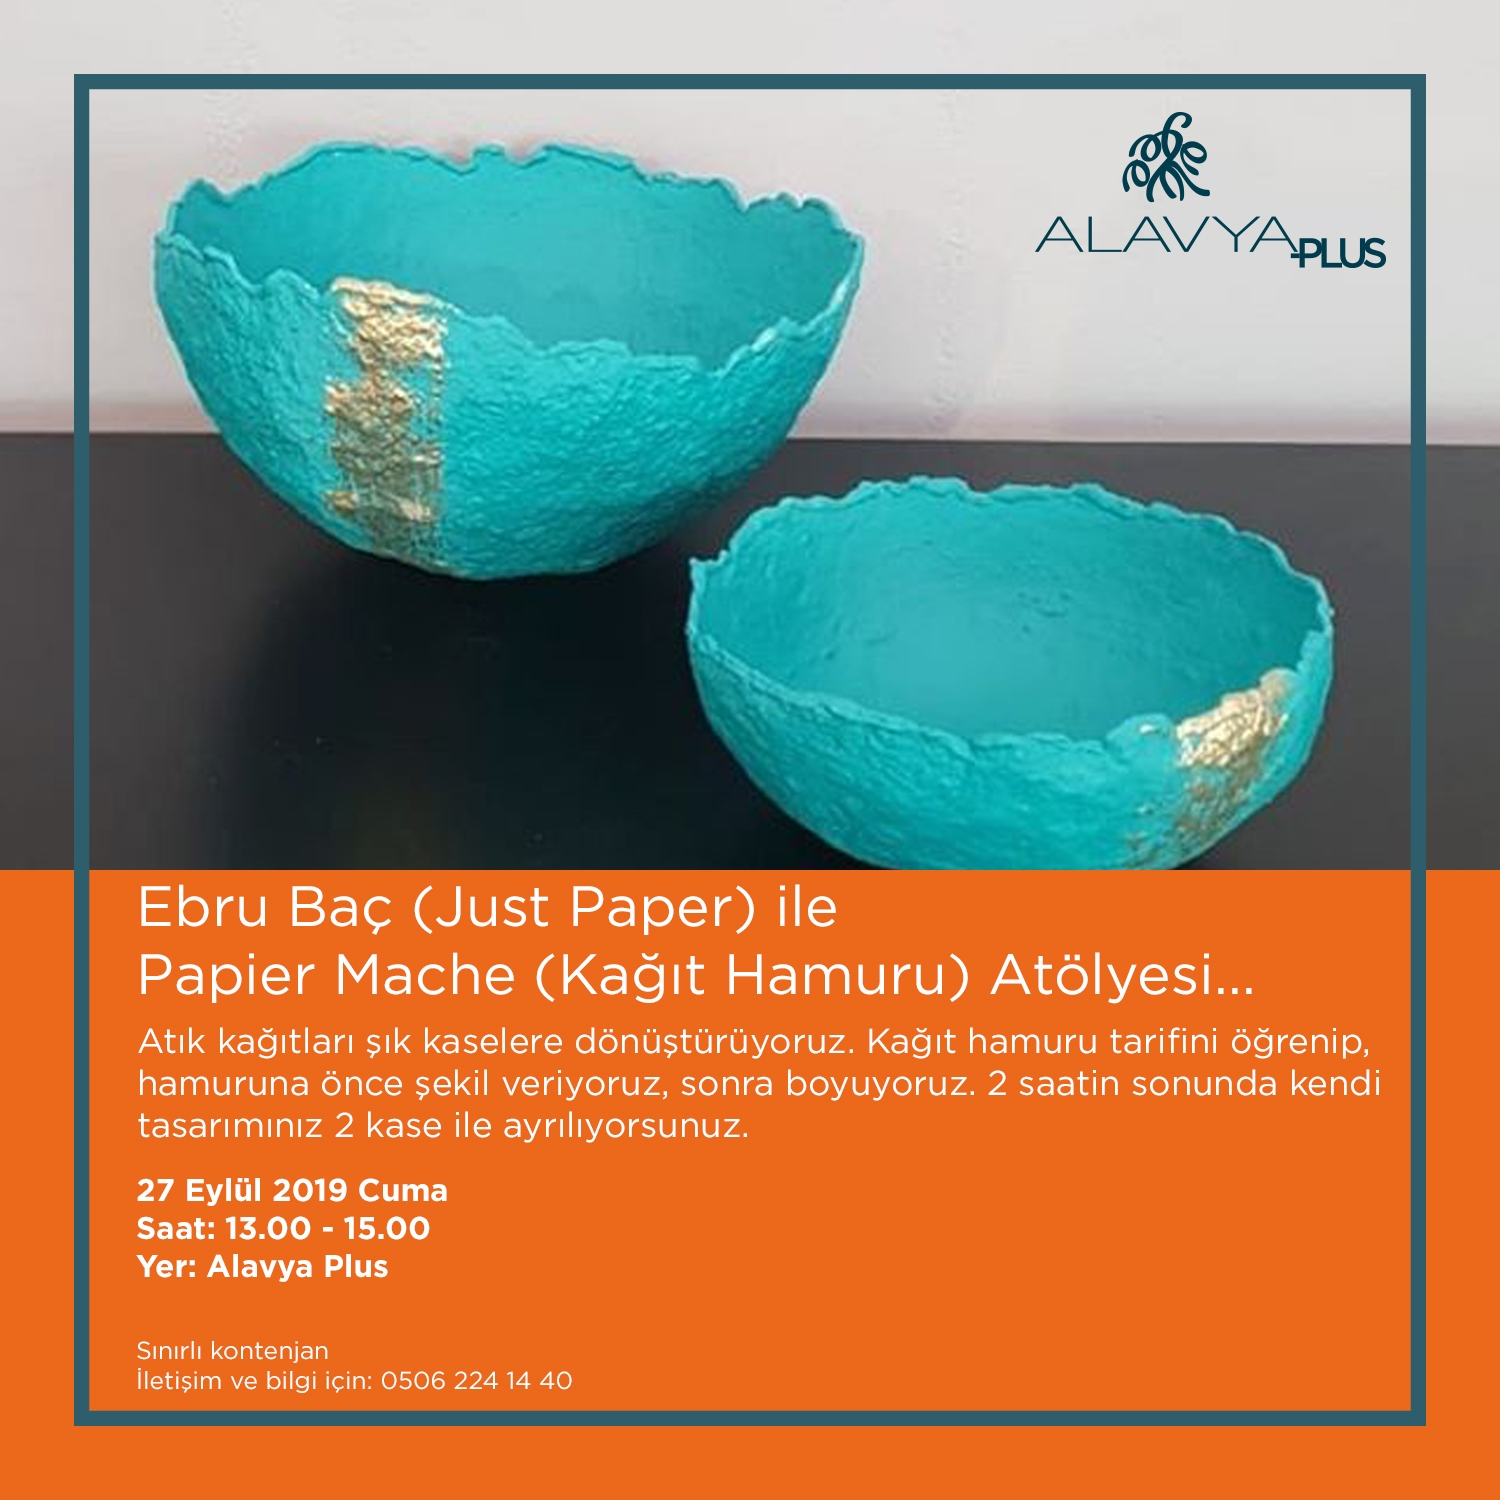 JUST PAPER Atelier with Ebru Baç